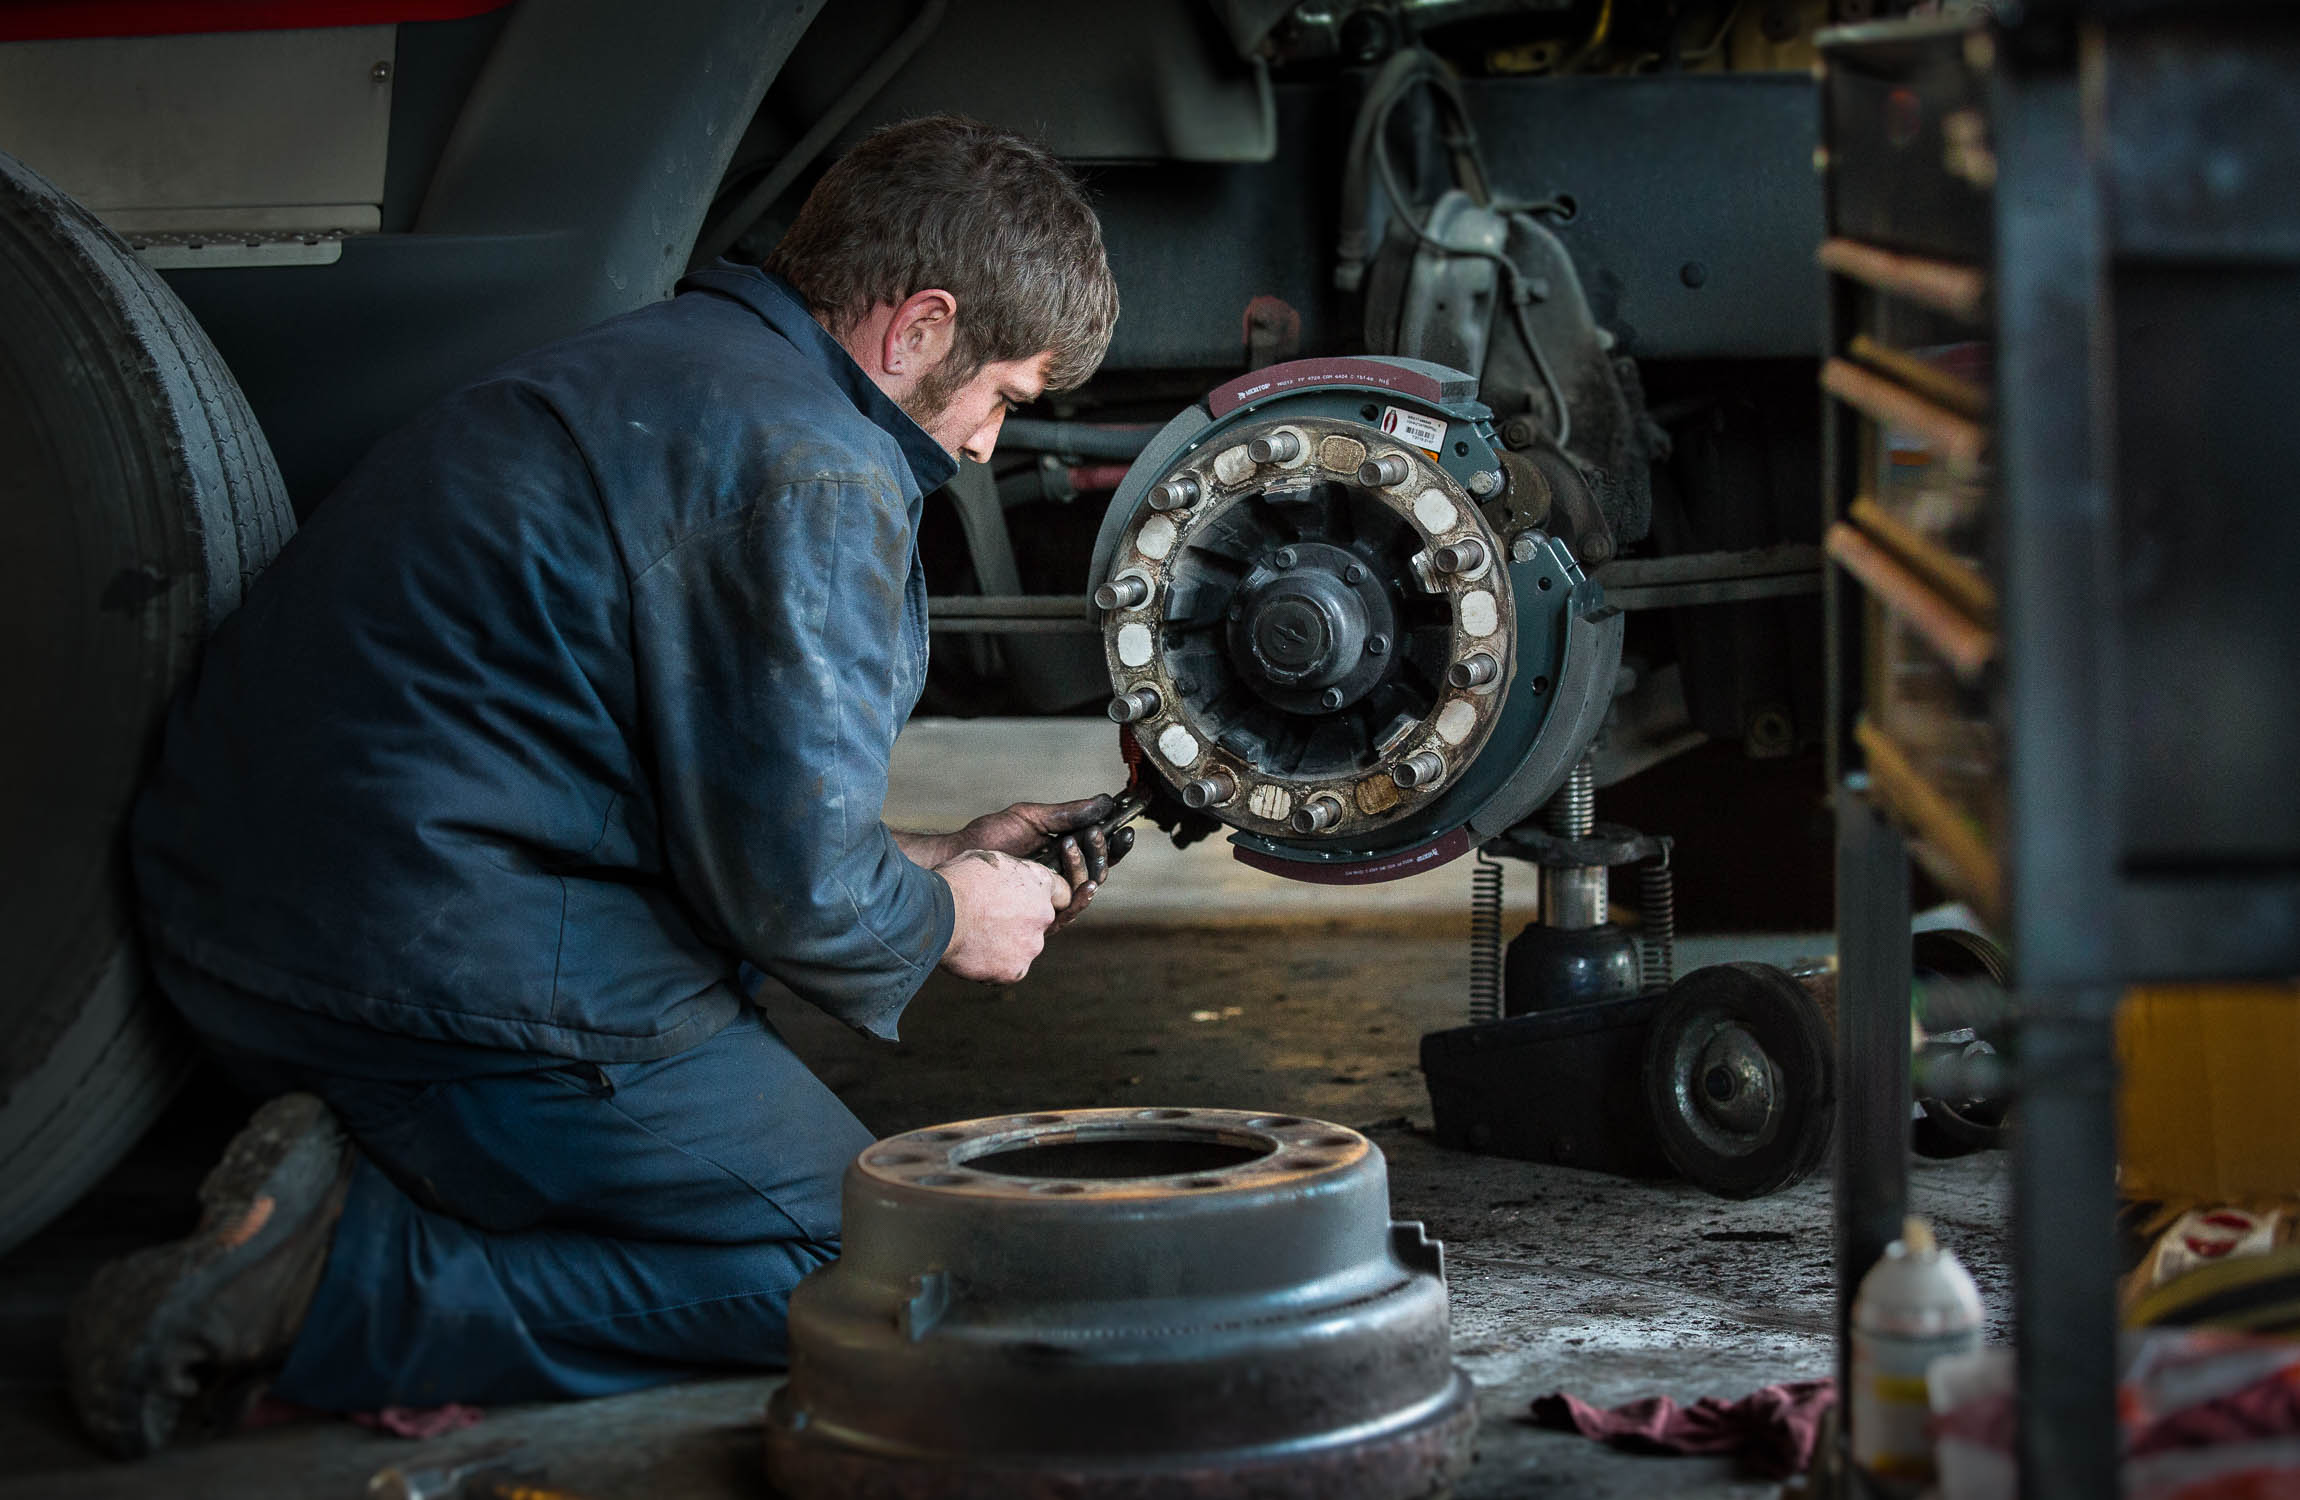 Truck mechanic in Atlanta installs brakes for photographer Gregory Campbell